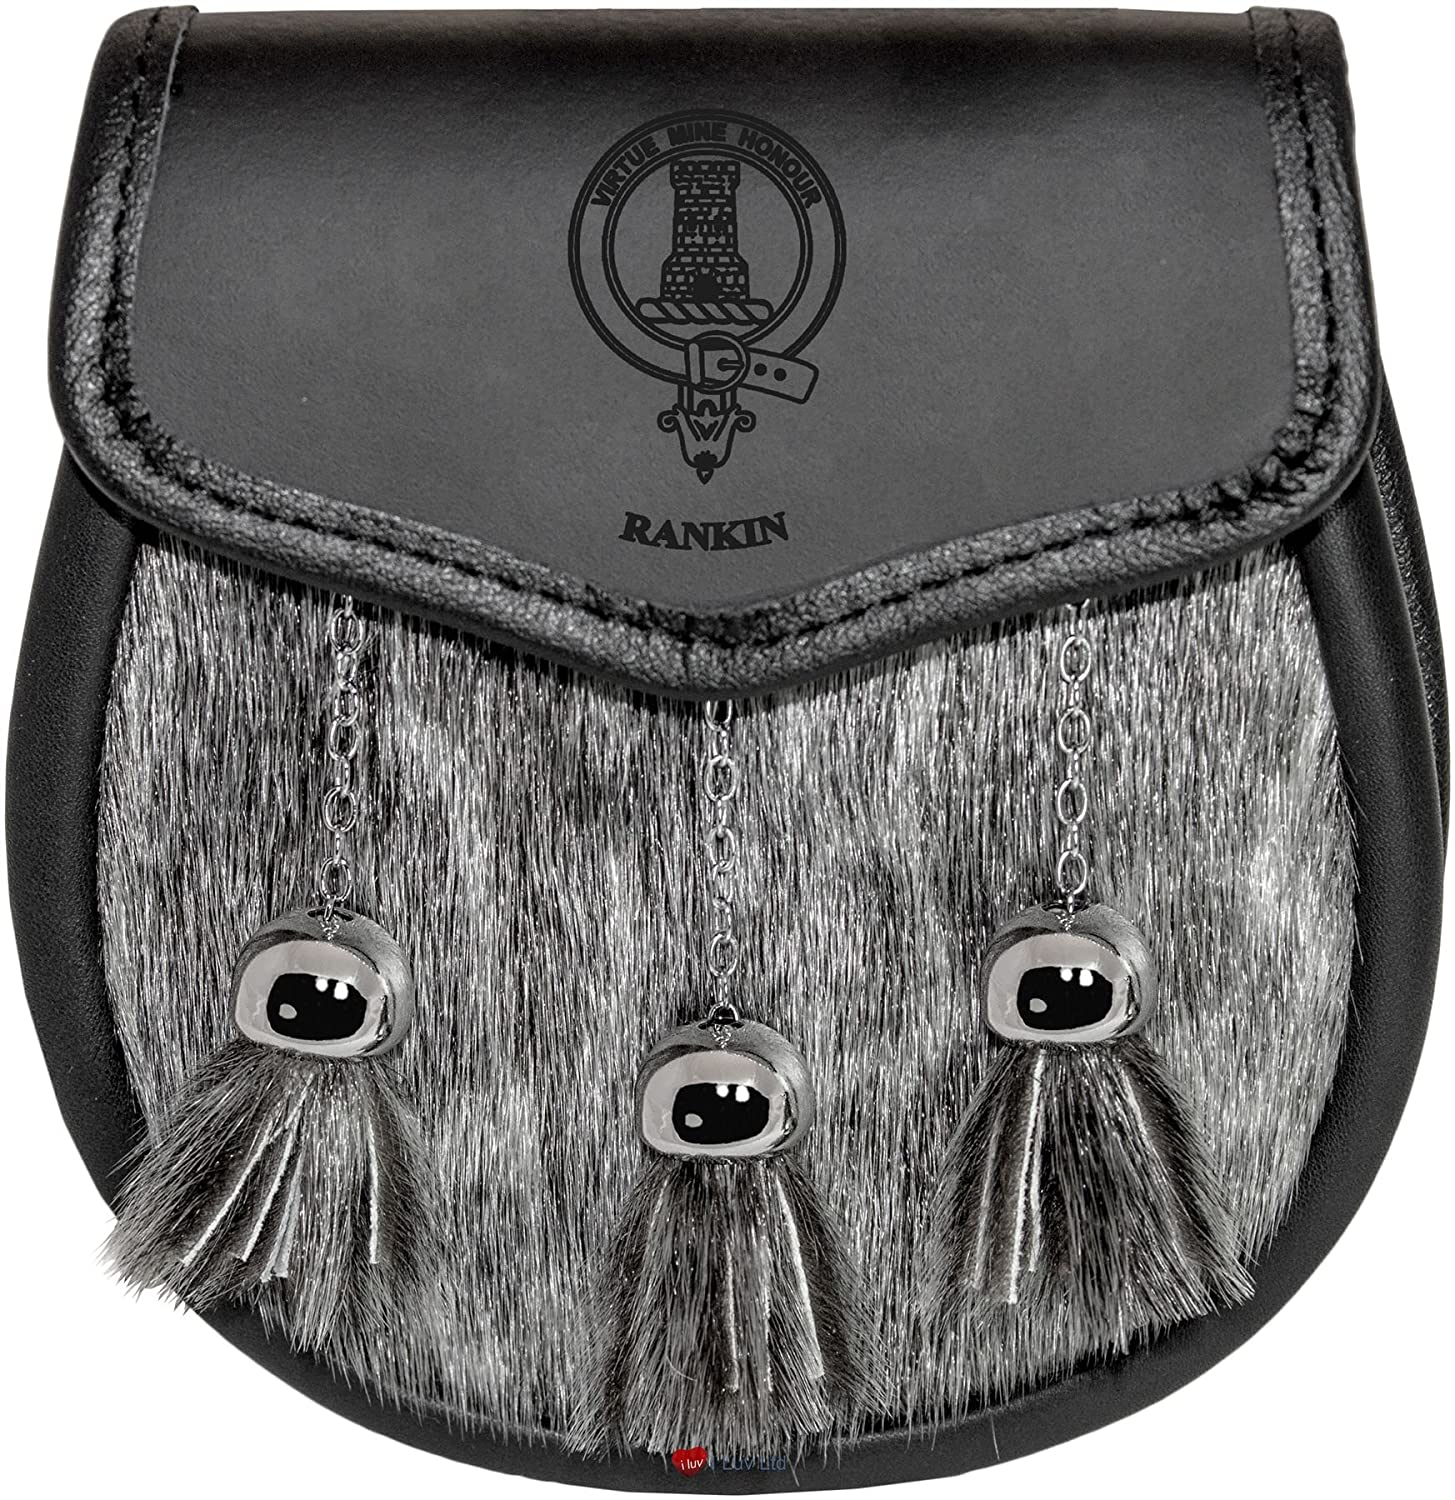 Rankin Semi Dress Sporran Fur Plain Leather Flap Scottish Clan Crest